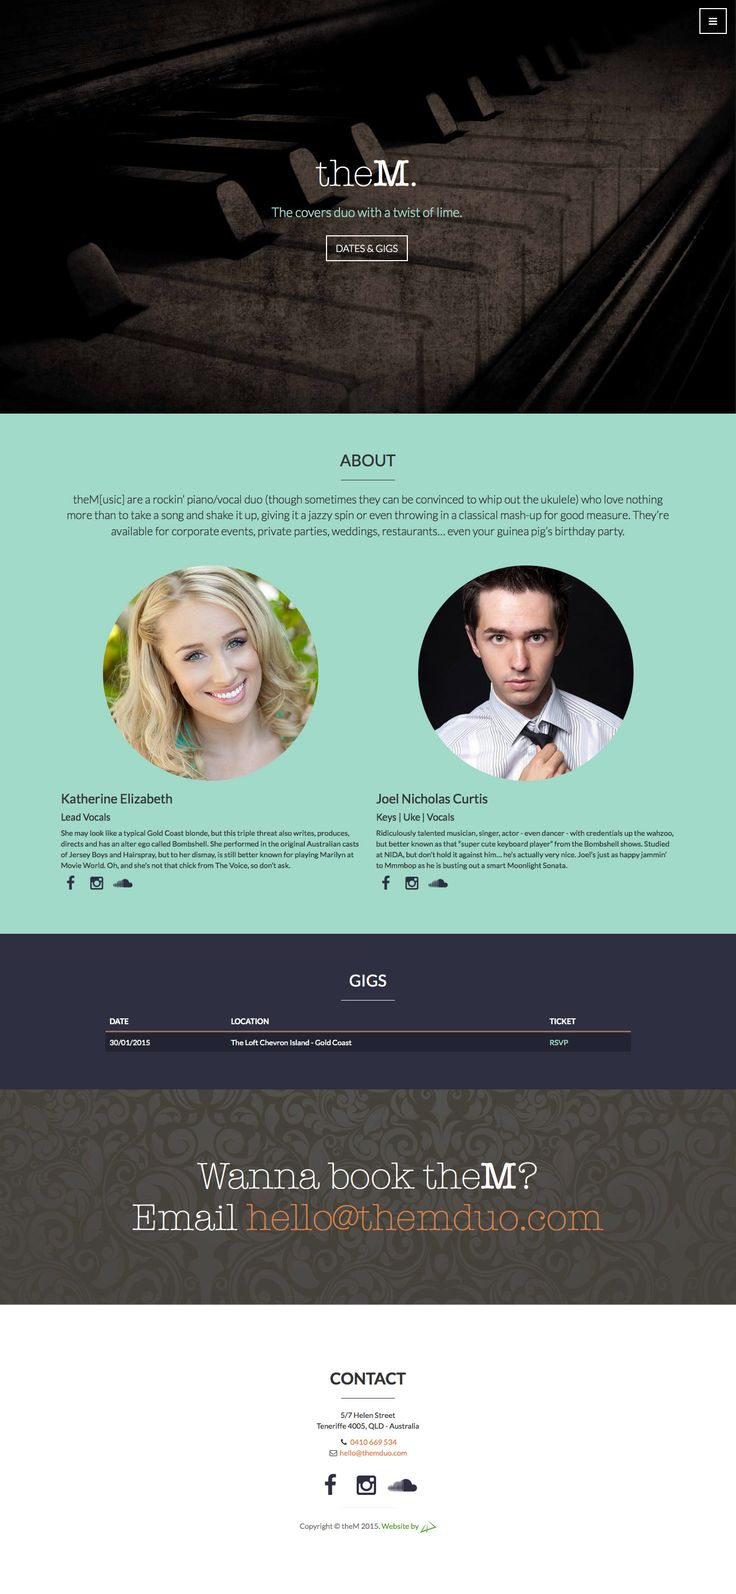 Landing page for theM. duo